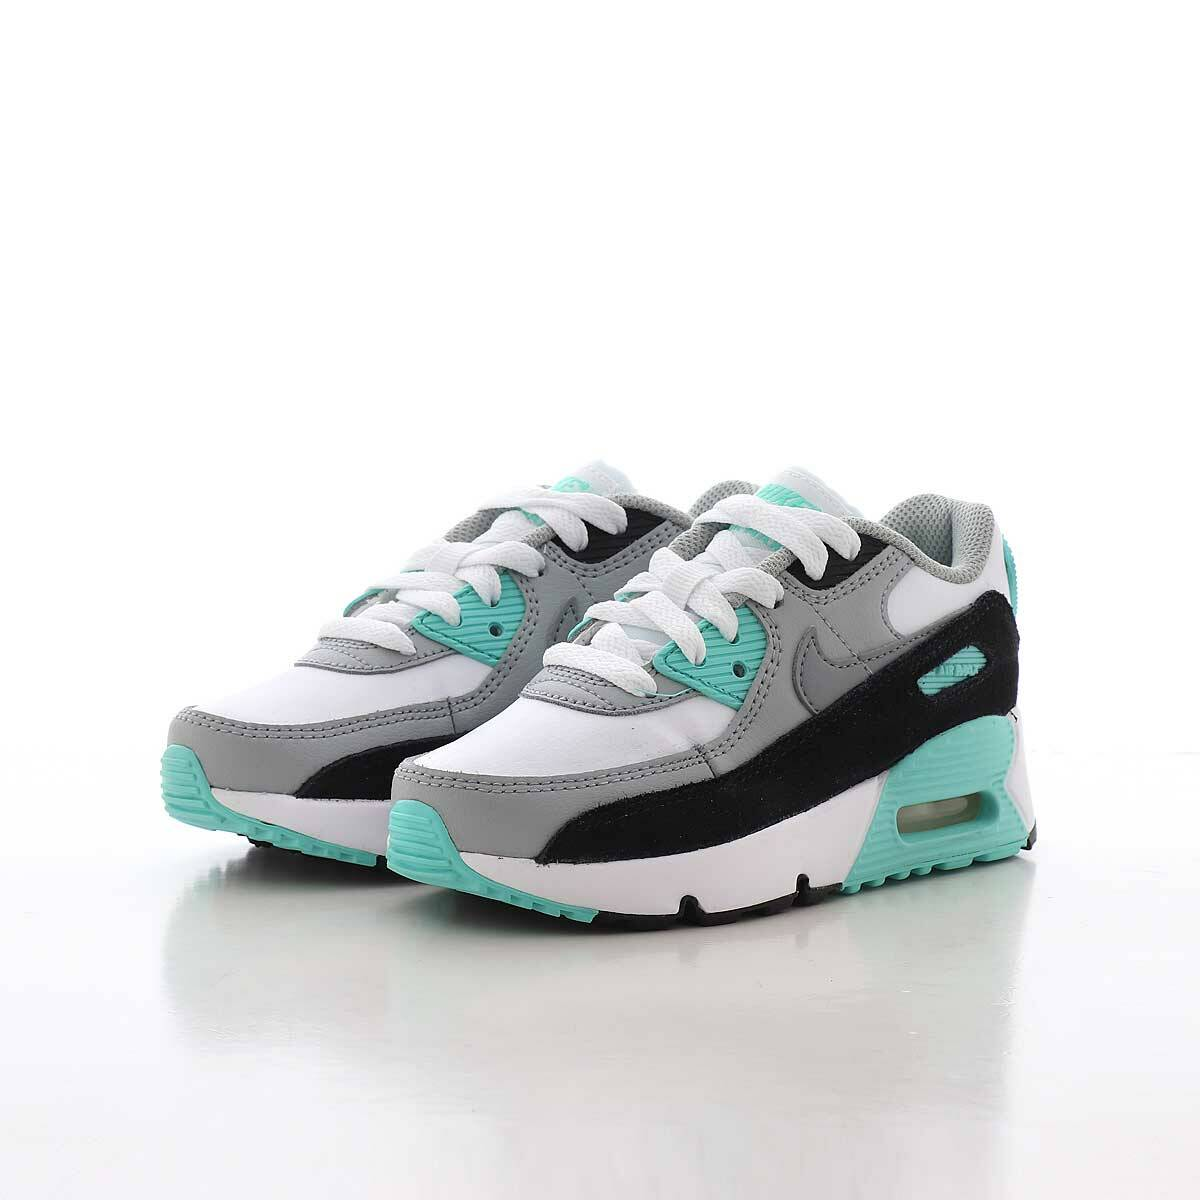 Nike Air Max 90 PS in weiss CD6867 102 | everysize